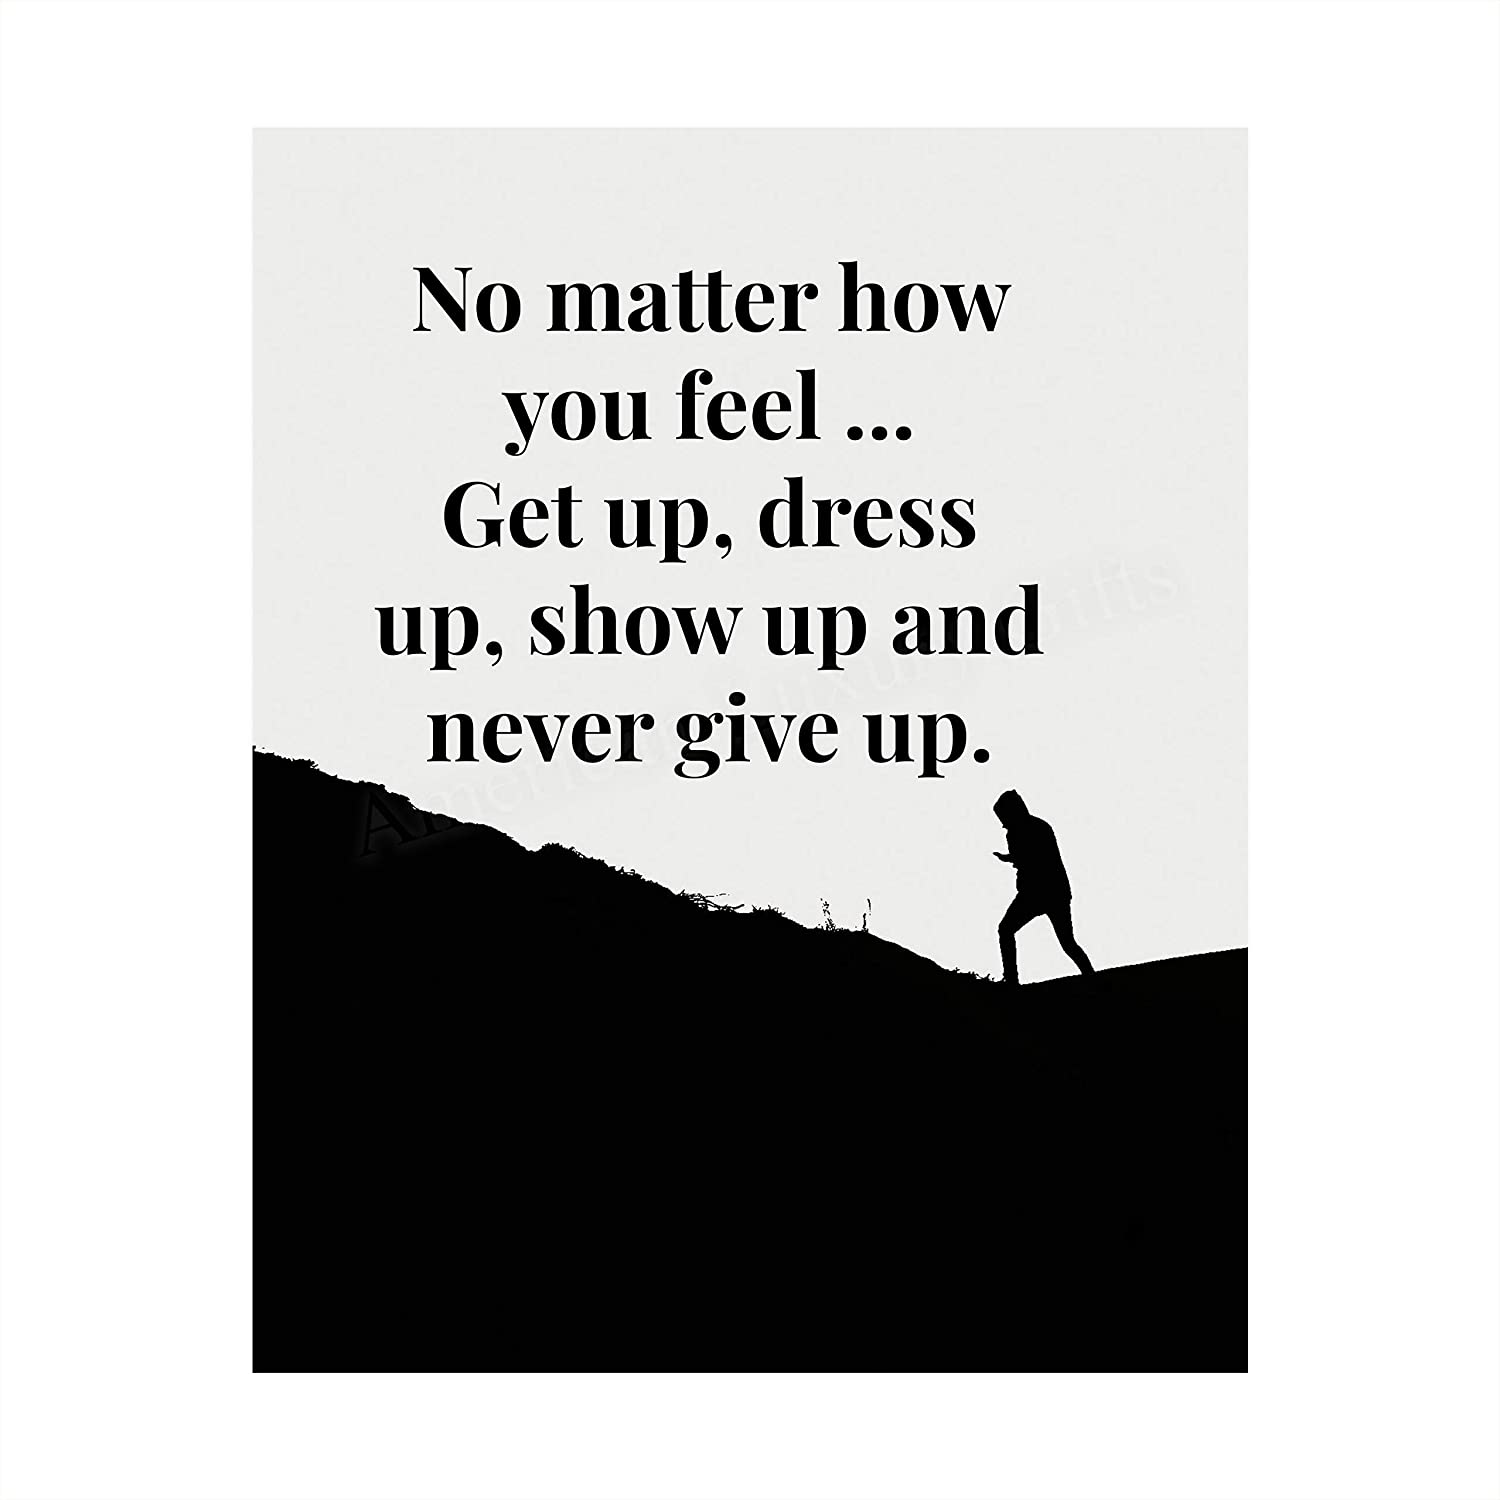 Get Up Dress Up Show Up Never Give Up Motivational Quotes Wall Art 8 X 10 Typographic Poster Print Ready To Frame Inspirational Home Office School Dorm Gym Decor Great Sign For Motivation Handmade